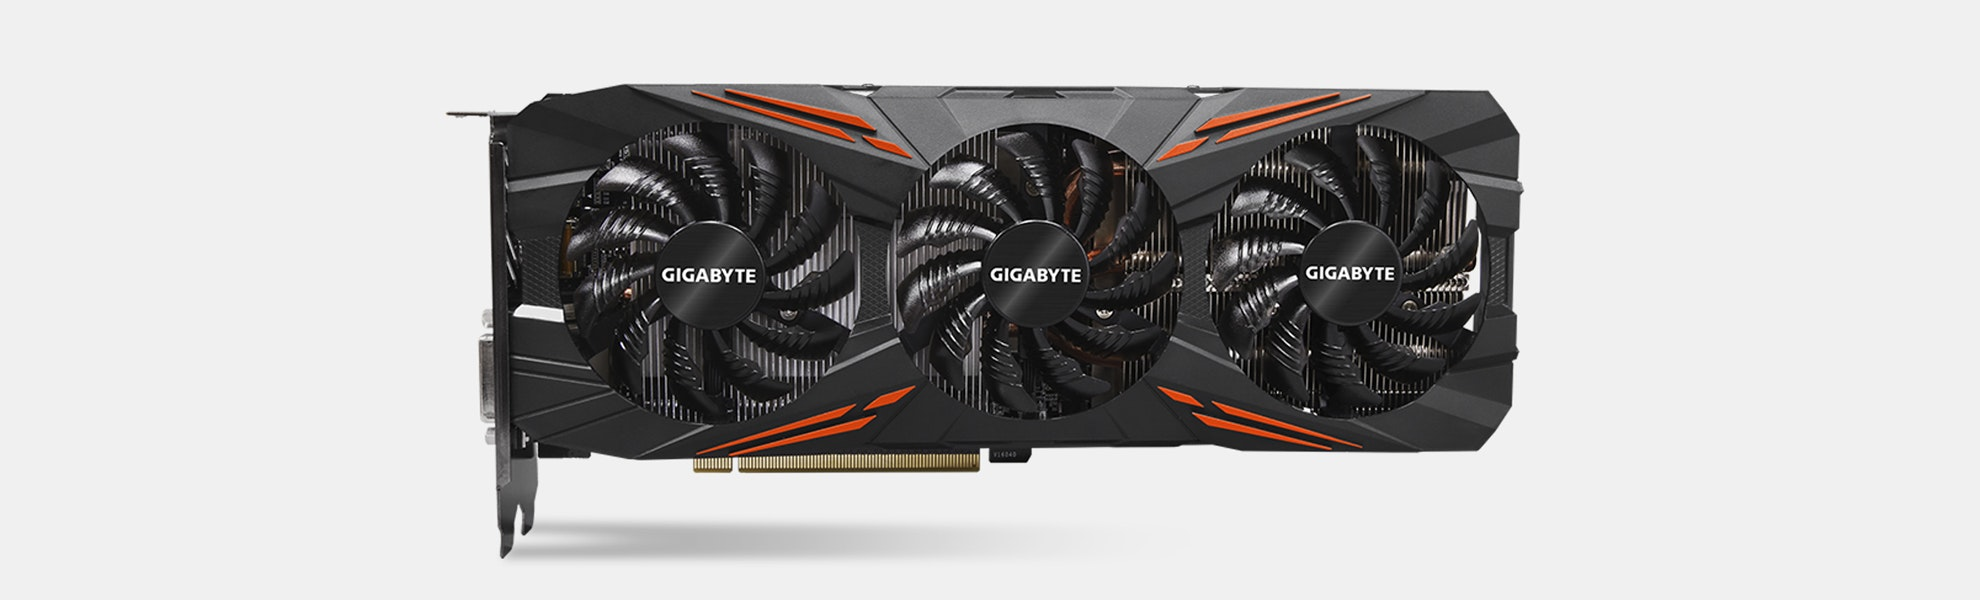 Gigabyte GeForce GTX 1080 G1 Gaming 8G